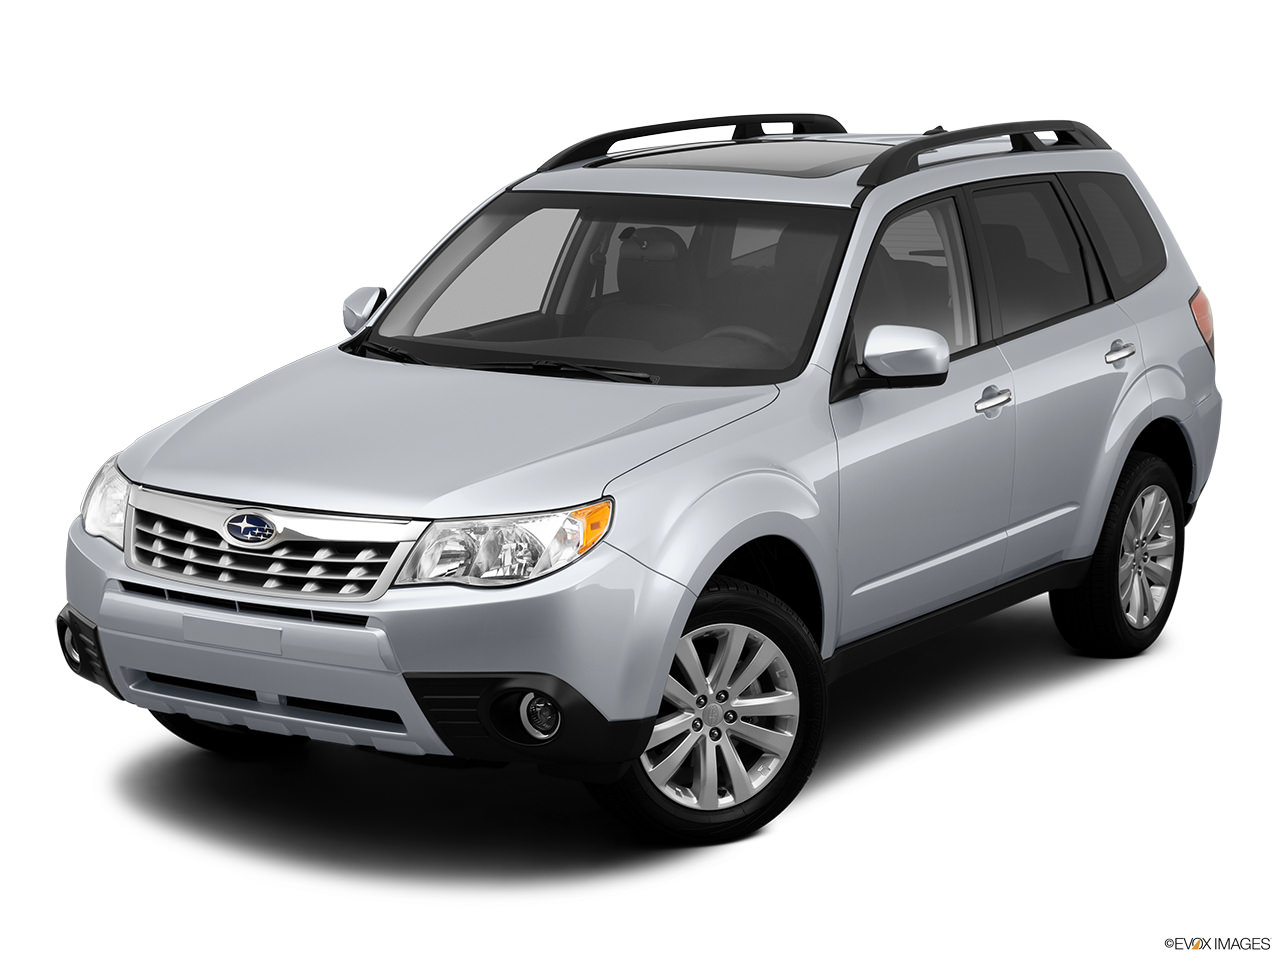 2012 subaru forester vs 2012 subaru outback which one should i subaru forester 2012 vanachro Images